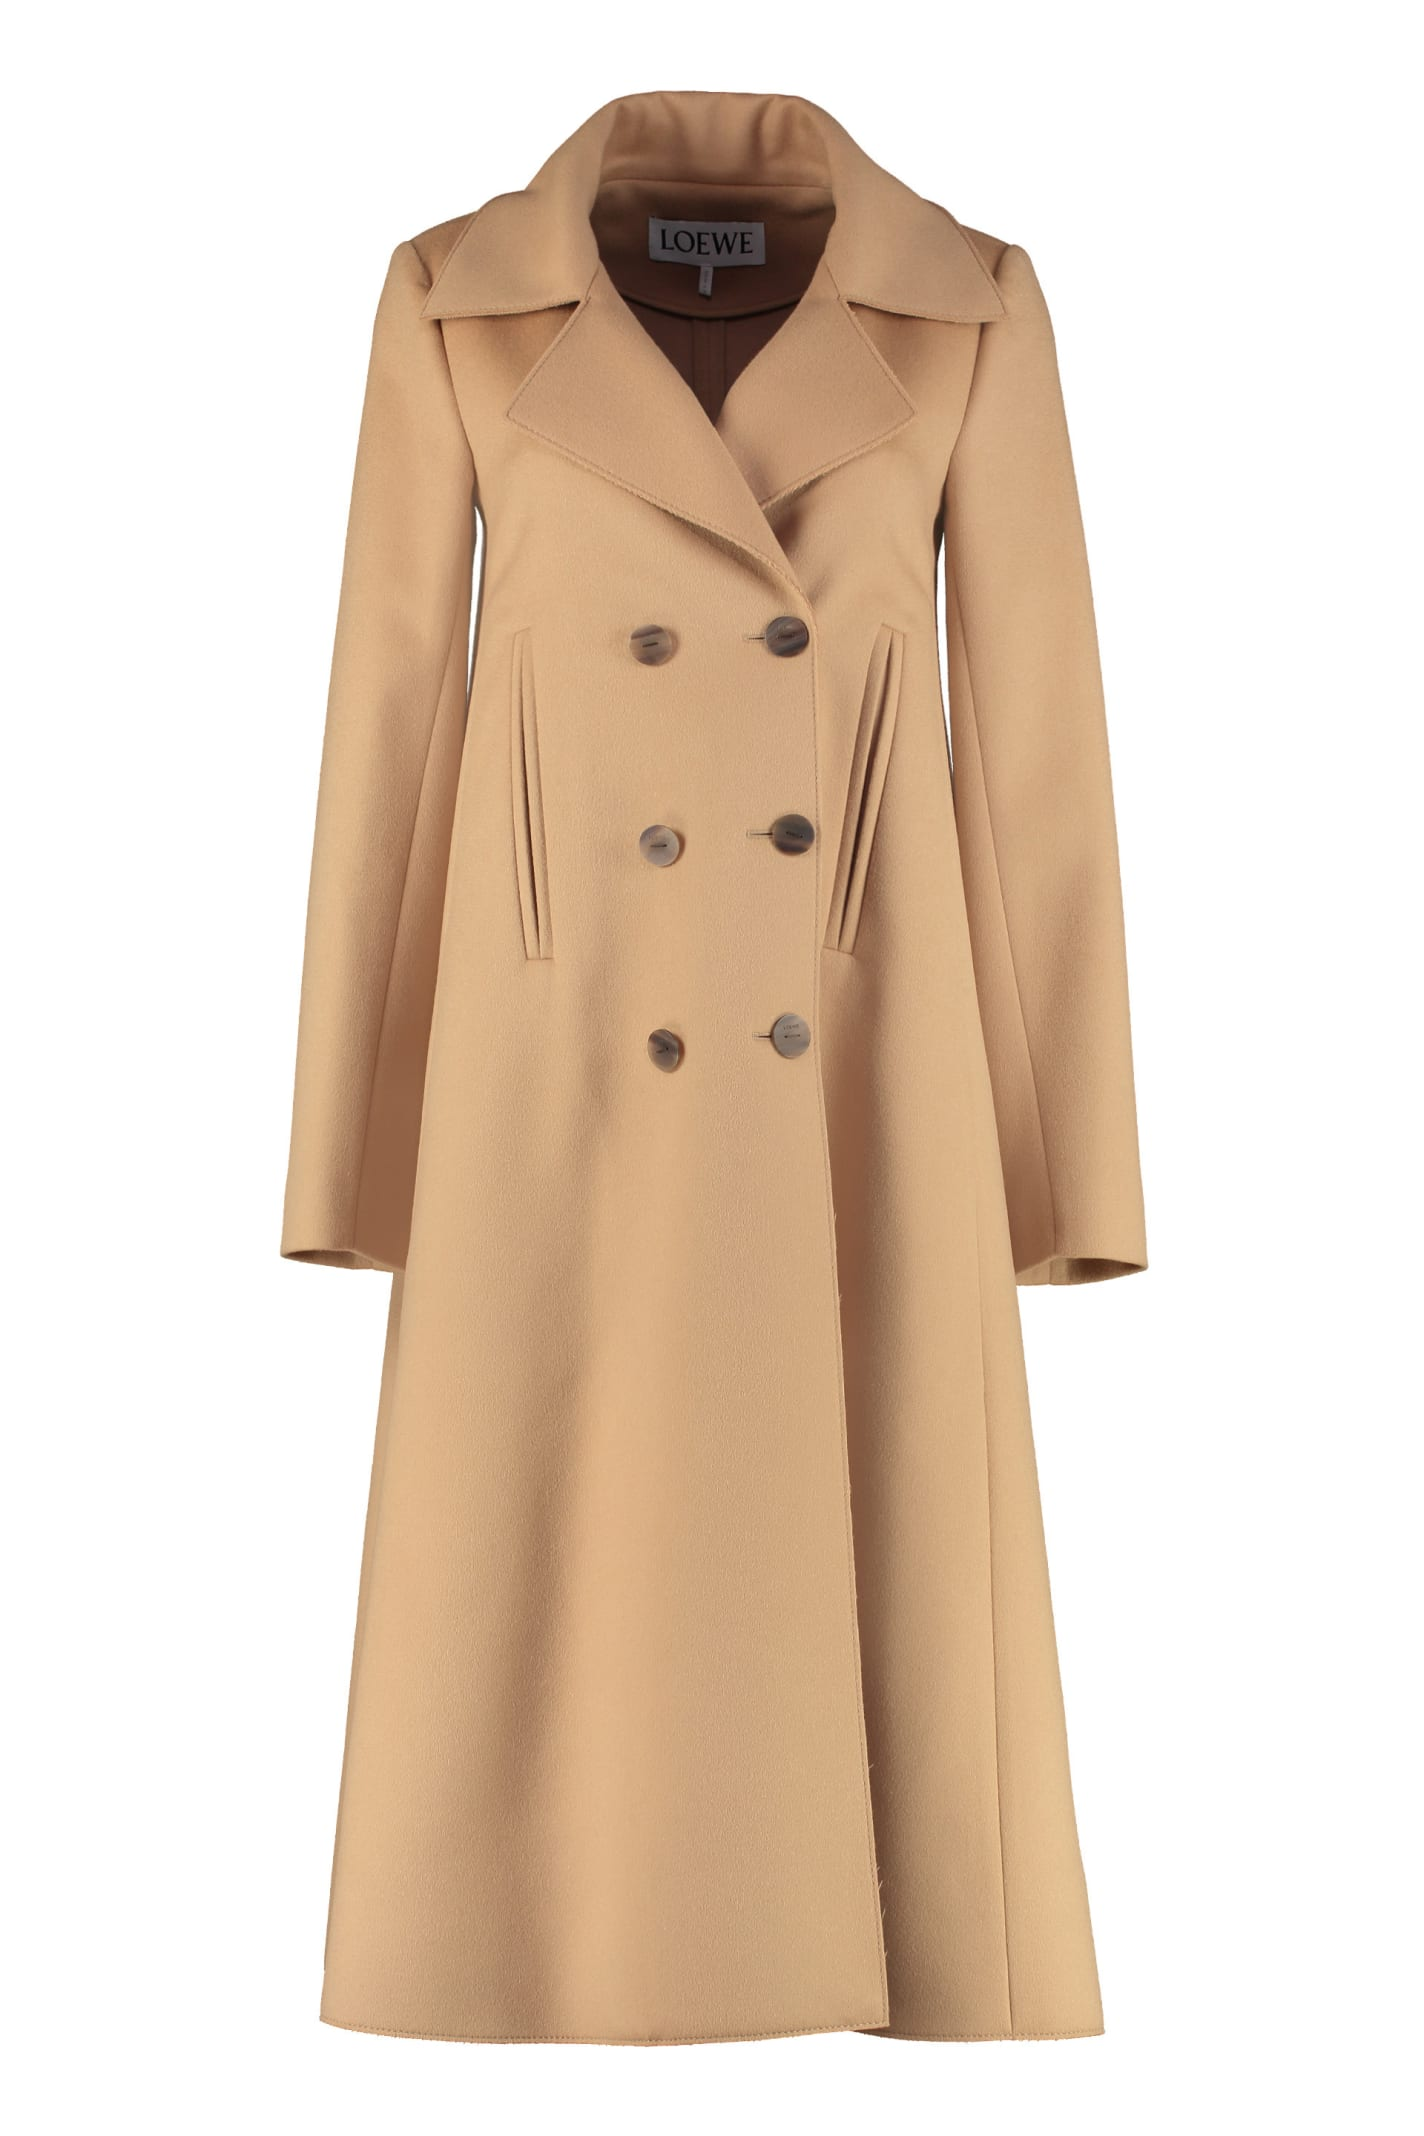 Loewe Swing Double-breasted Wool Coat